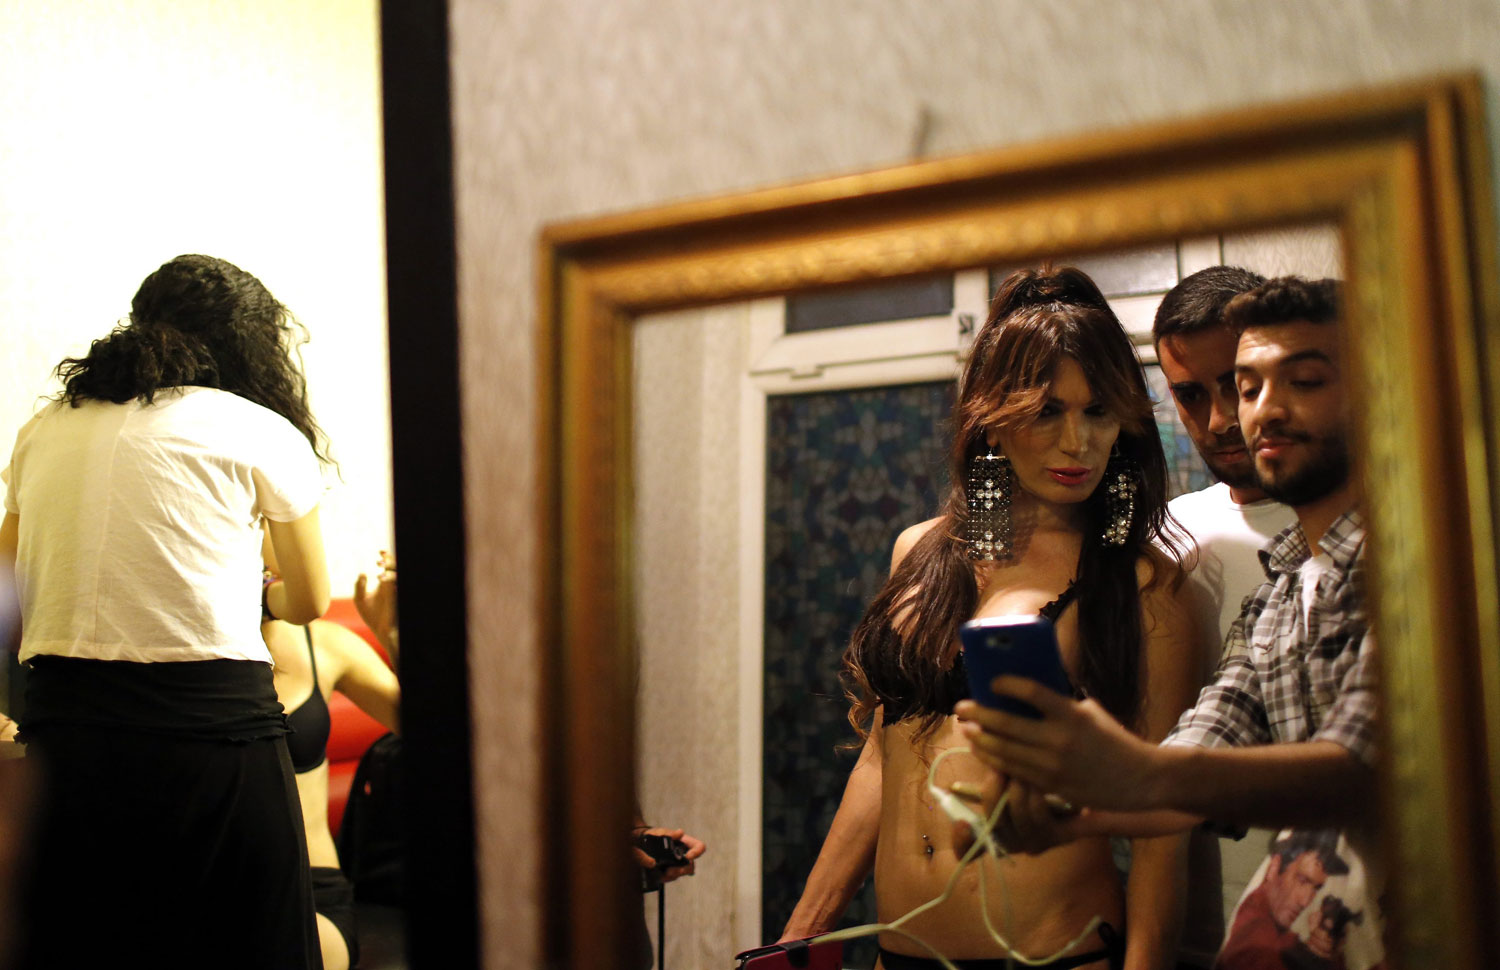 Contestants prepare backstage in Istanbul on June 21, 2014. The contest provided a moment of relief at a time when Turkey's LGBT community faces continual violence, as well as legal and social discrimination.